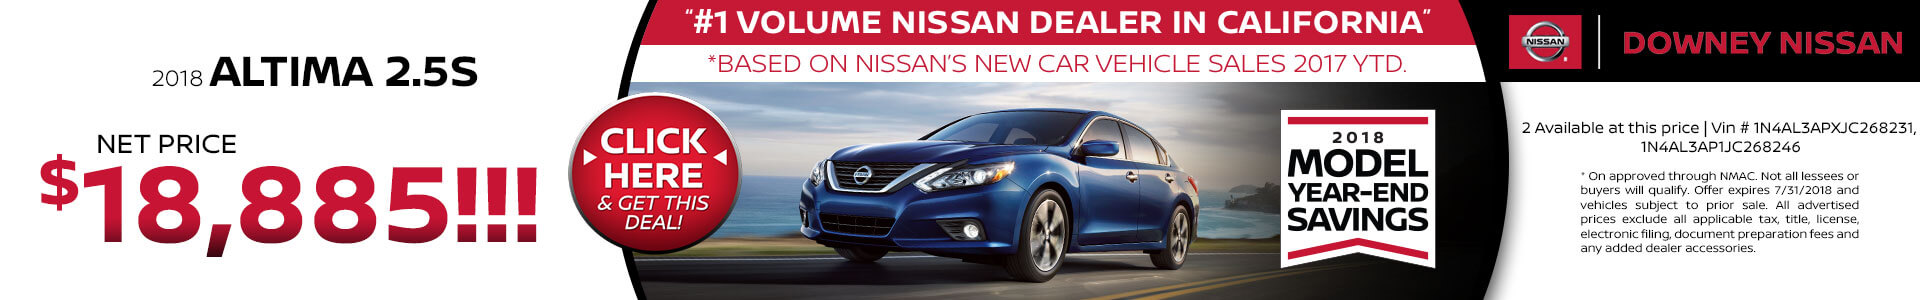 2018 Nissan Altima - Purchase for $18,885